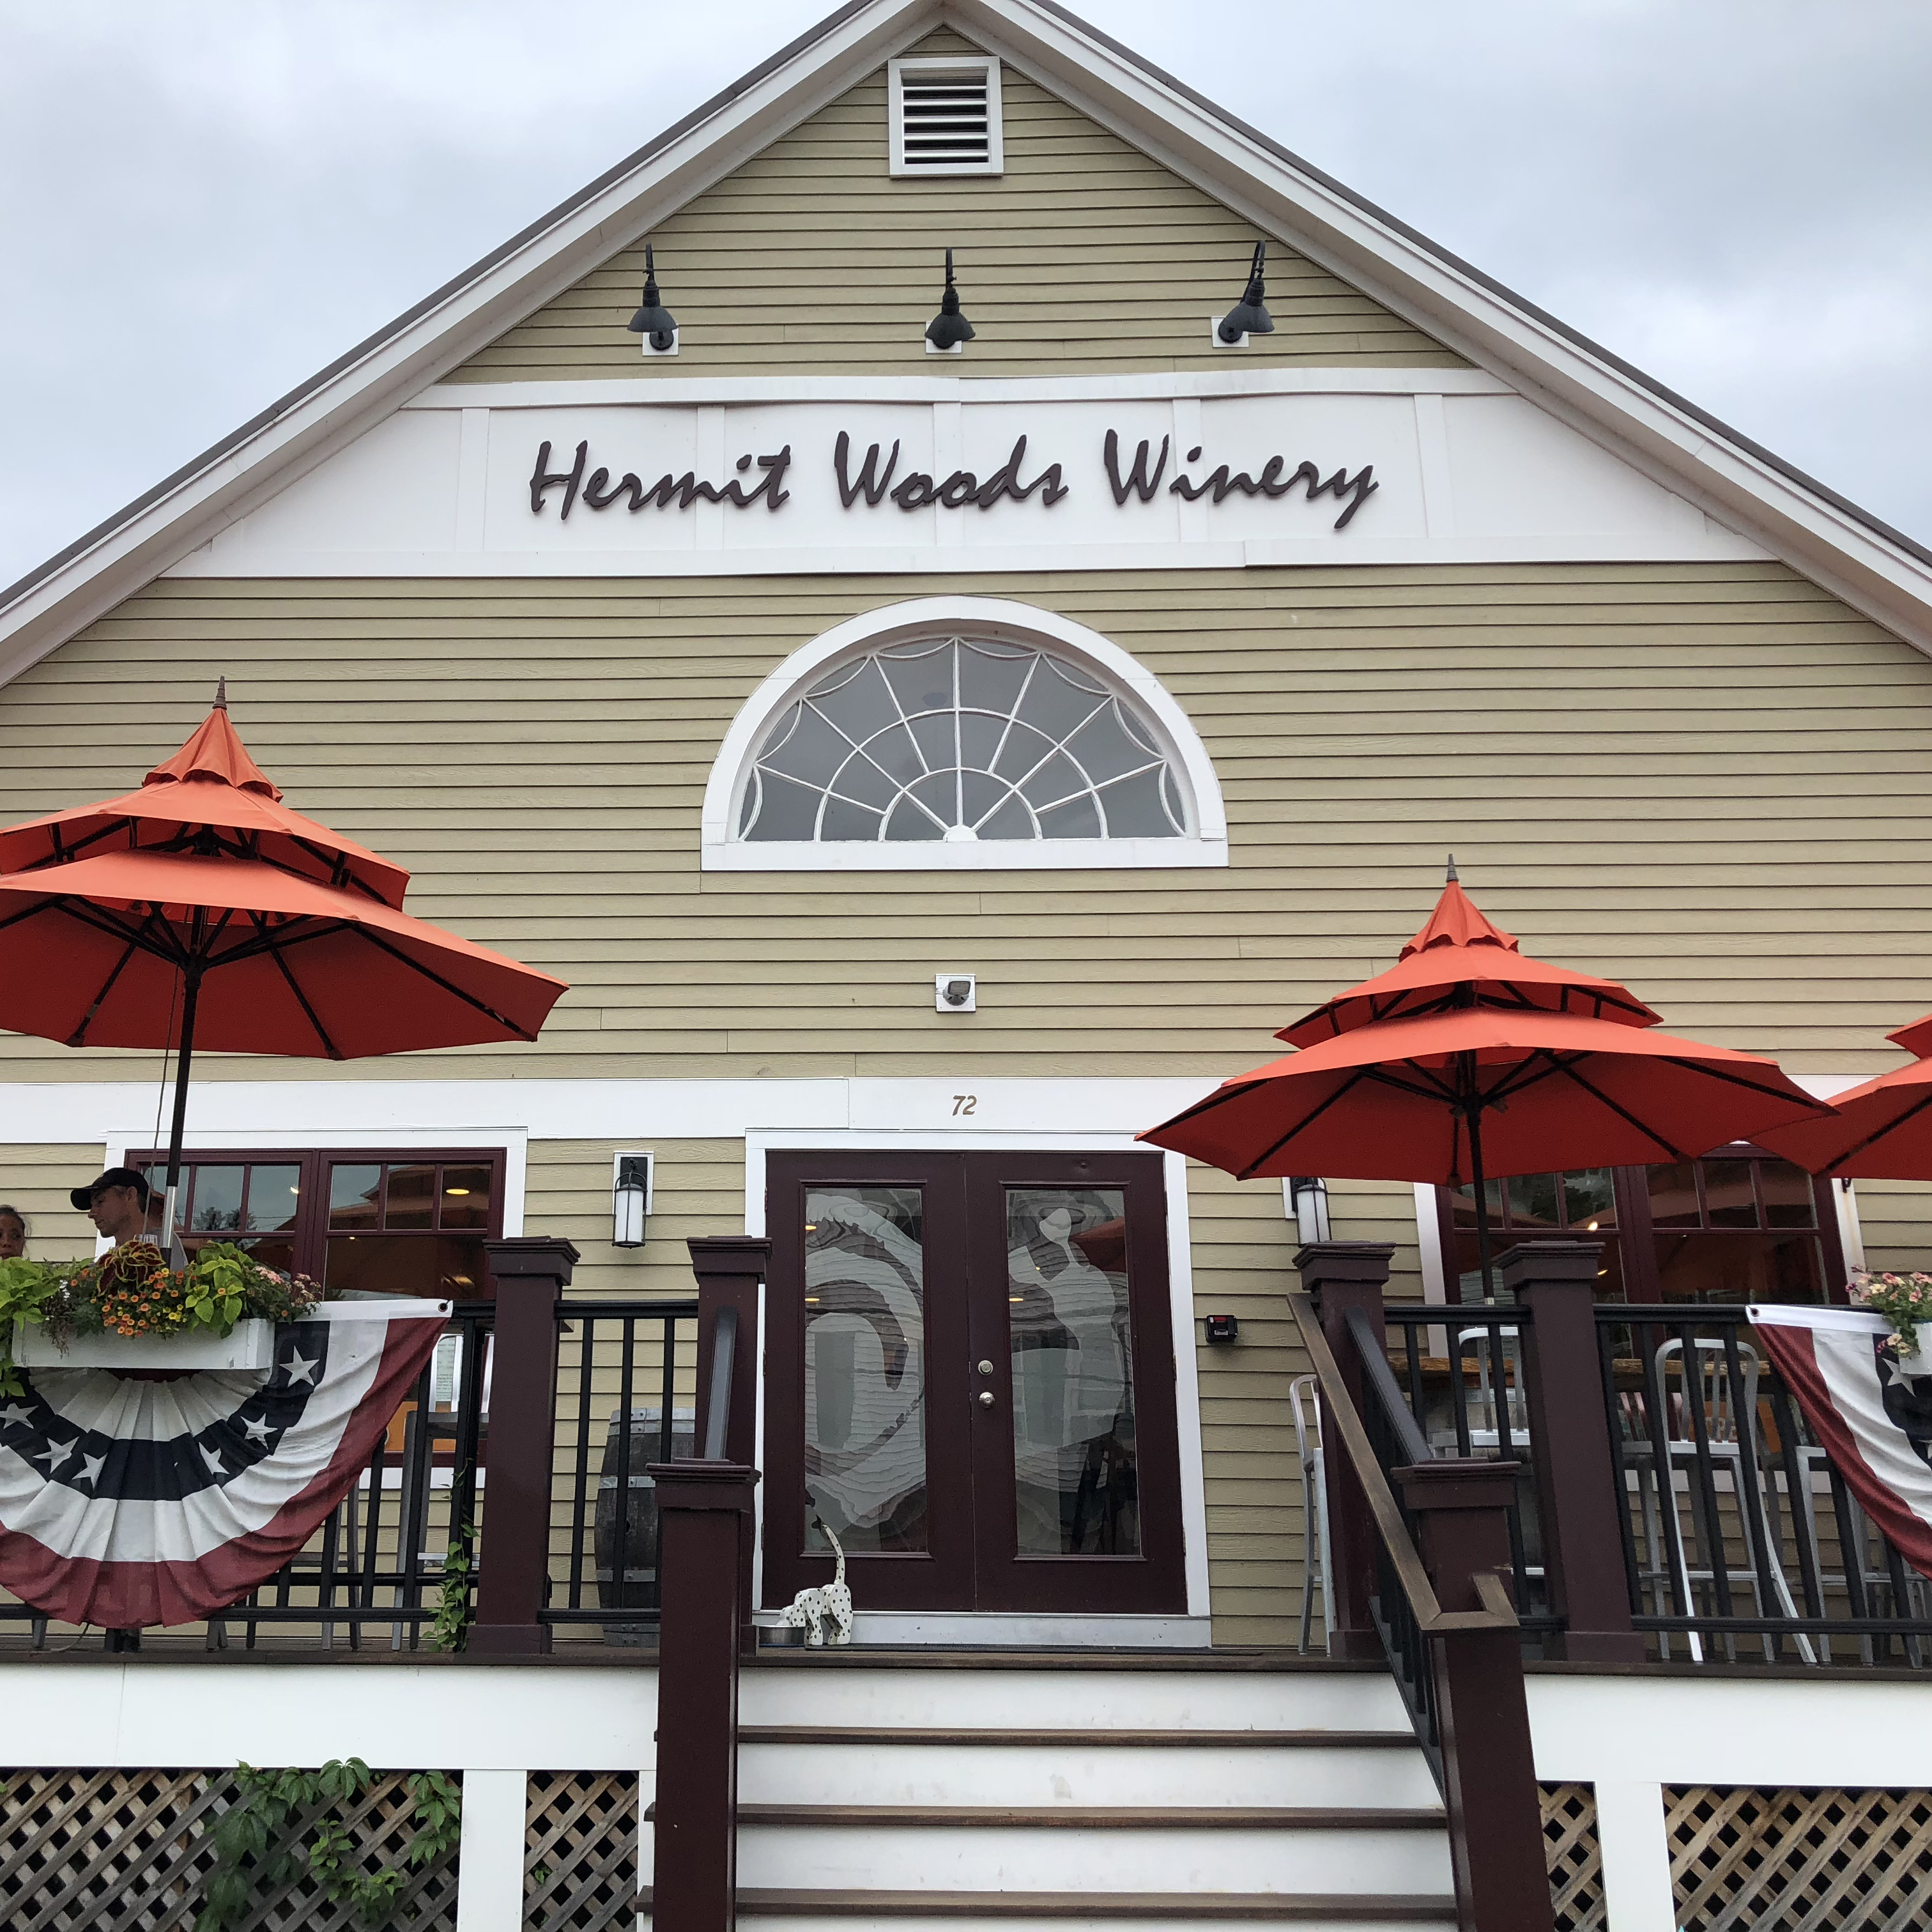 New-Hampshire-Hermit-Woods-Winery.jpg?mtime=20180818125457#asset:102980